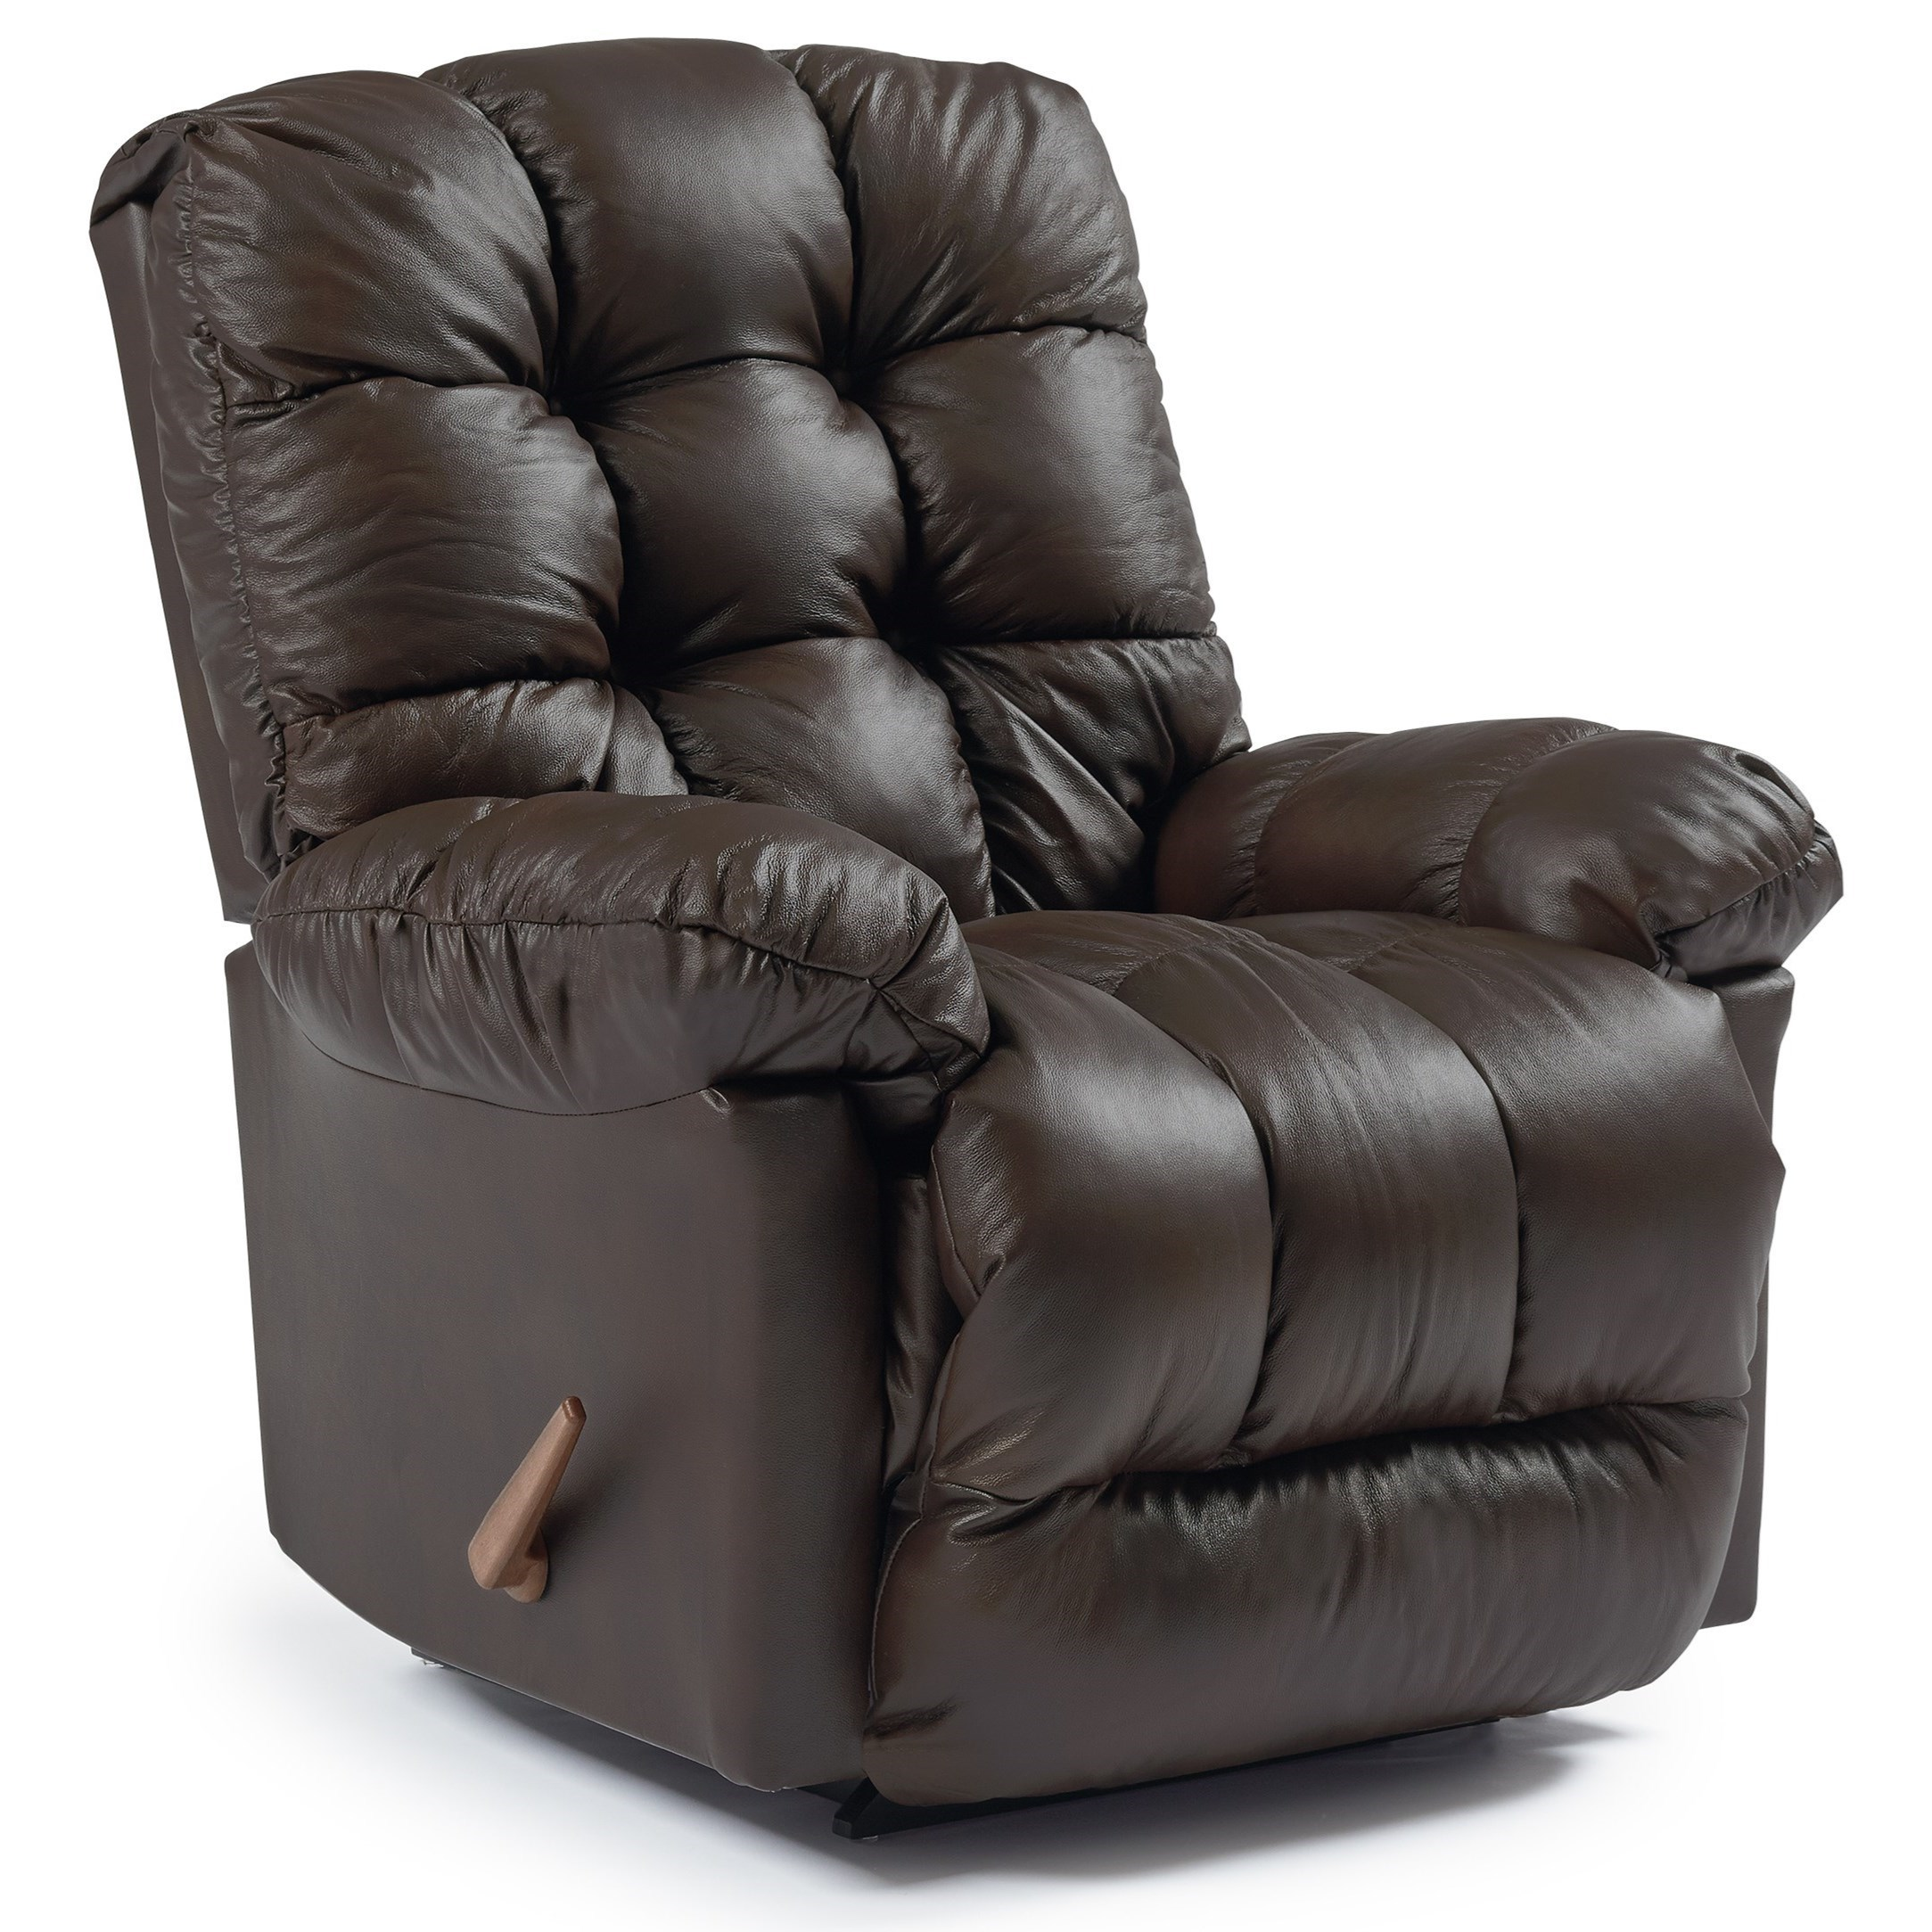 Swivel Rocker Recliner Chair Best Home Furnishings Medium Recliners 9mw89 1lv Brosmer Swivel